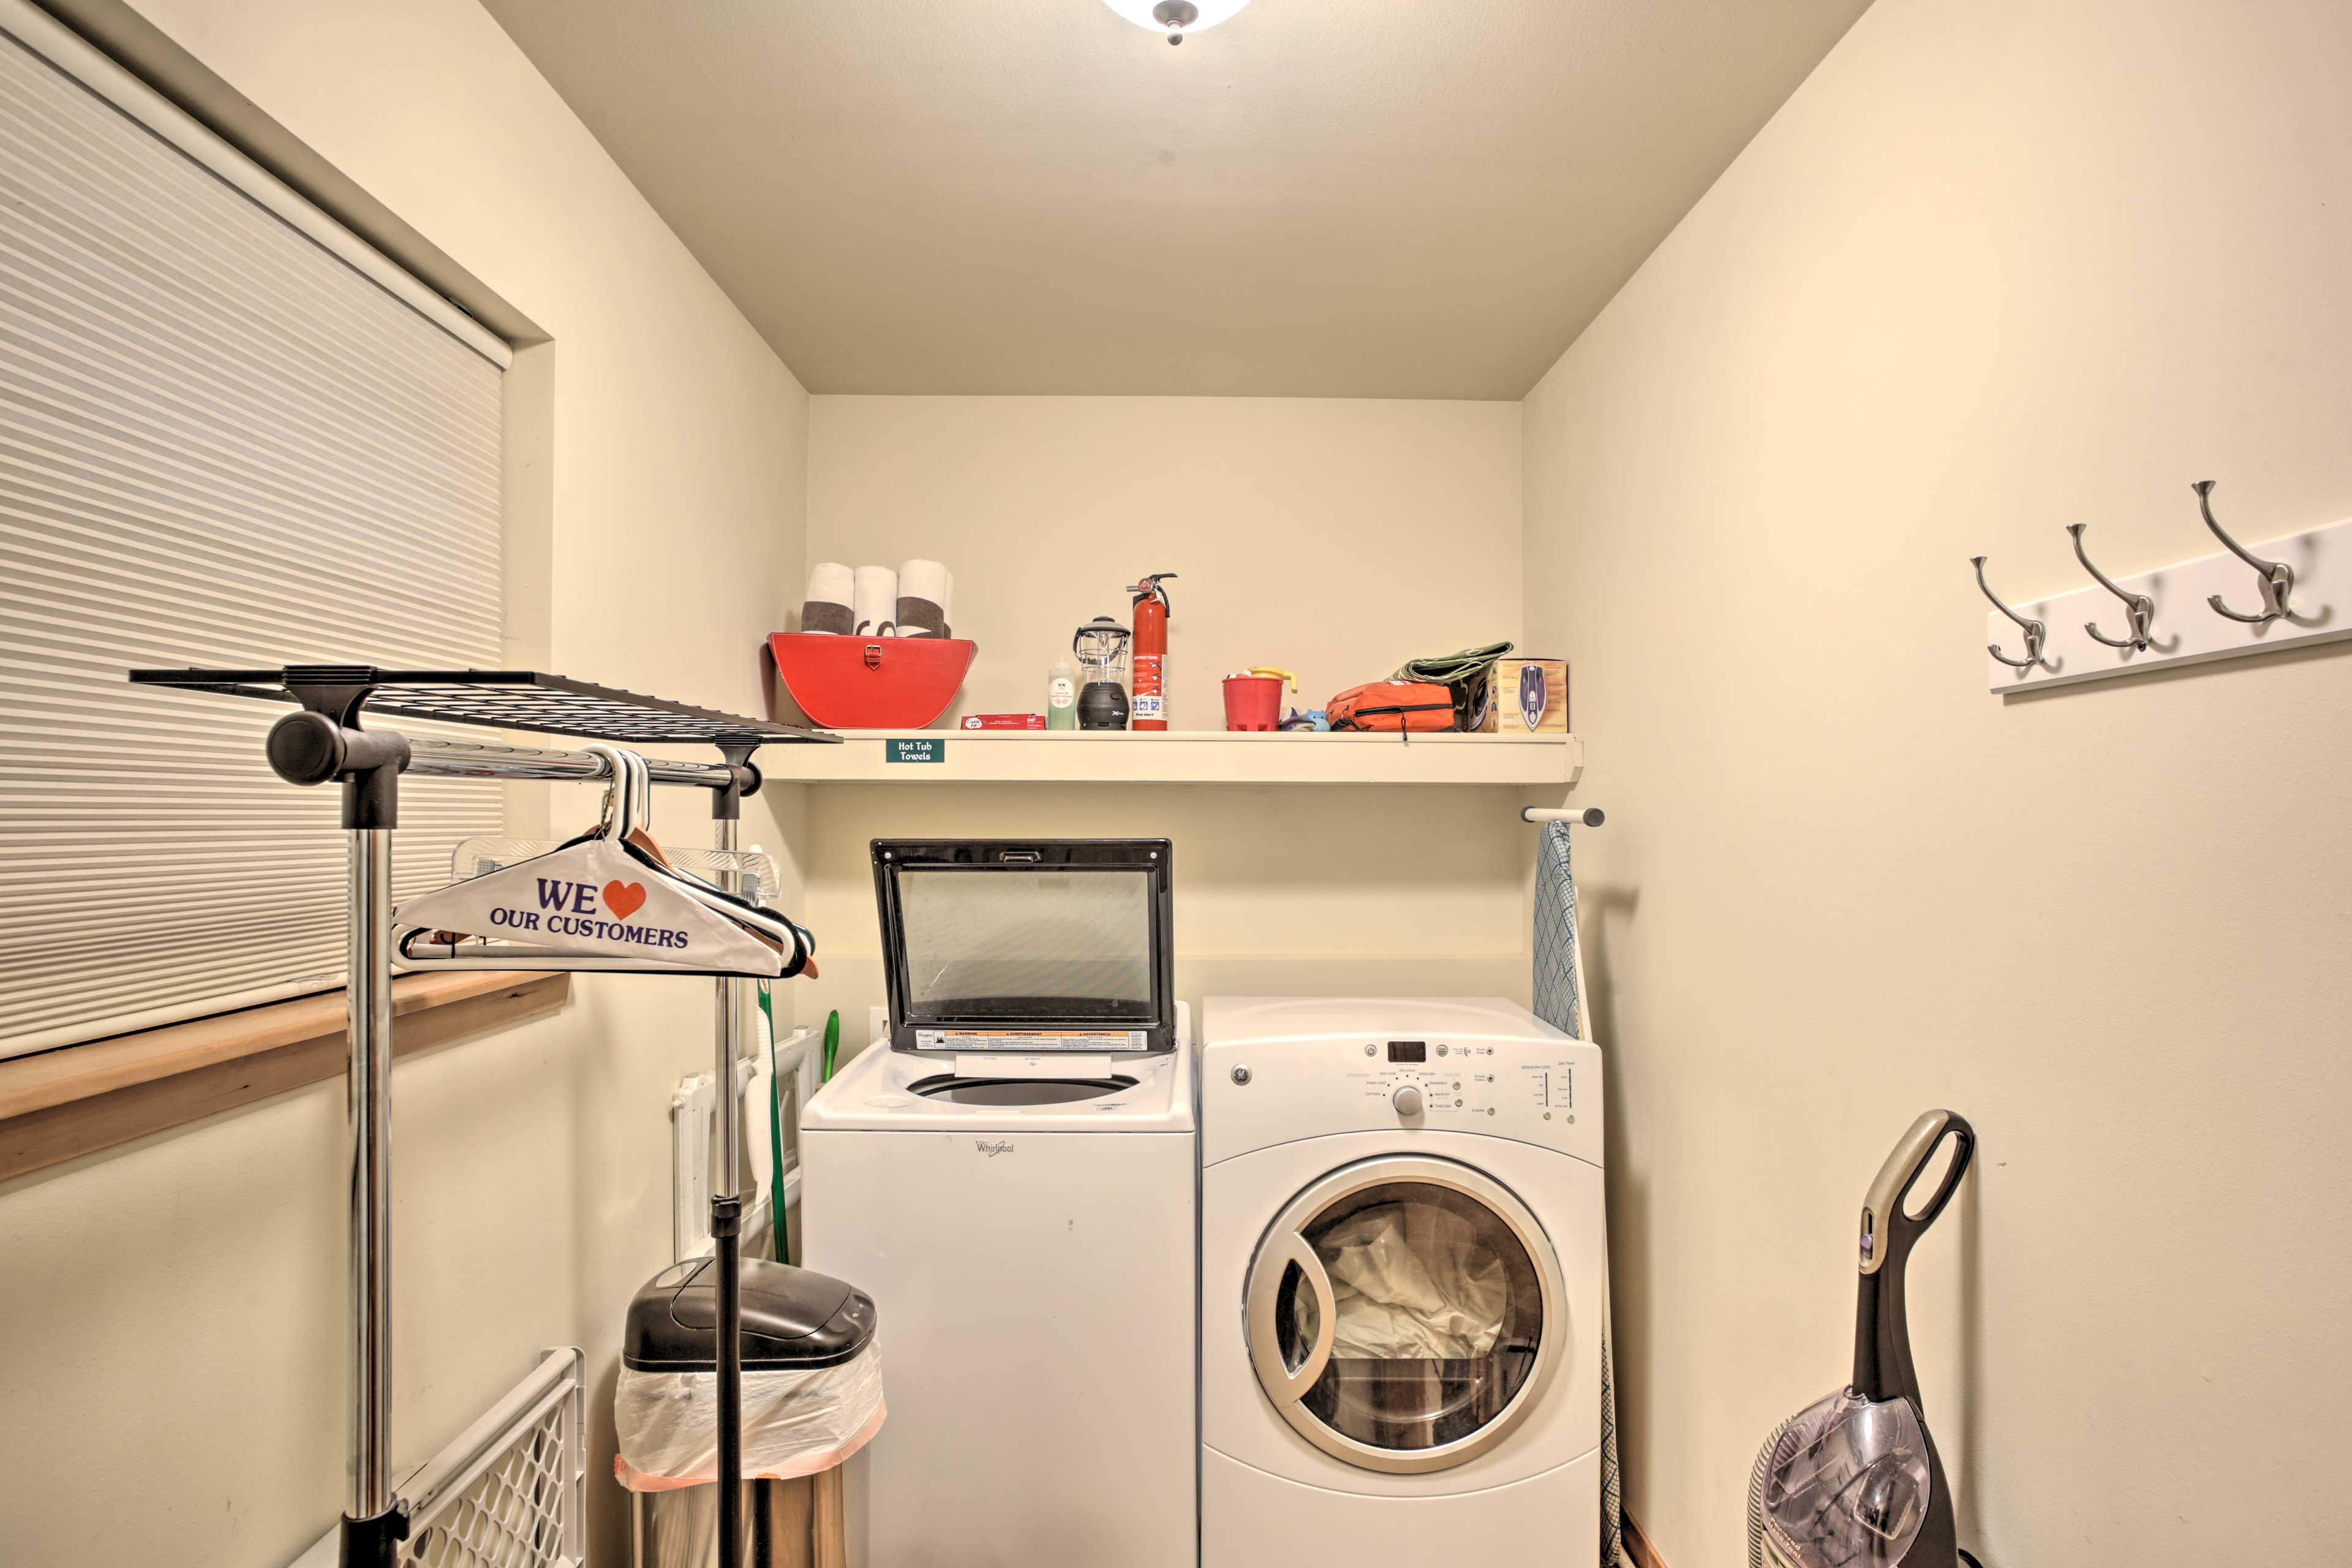 Wash your clothes in the in-unit laundry machines.